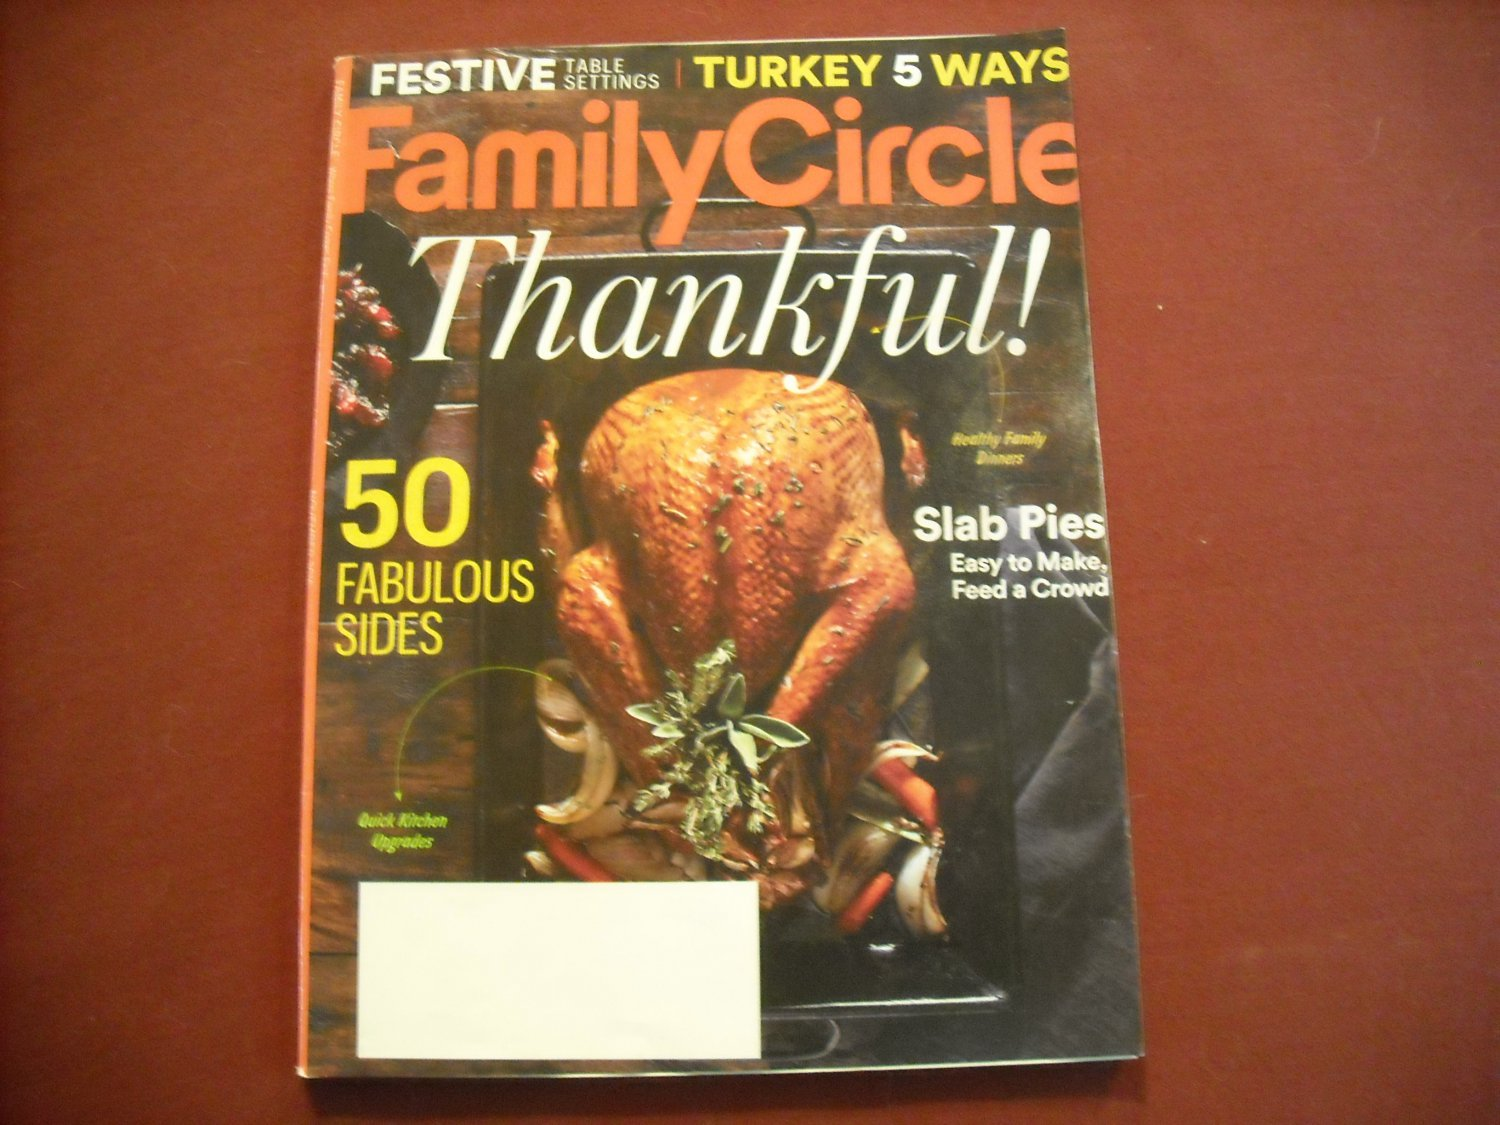 Family Circle Magazine November 2016 Volume 129 Number 11 - Thankful! (G1)